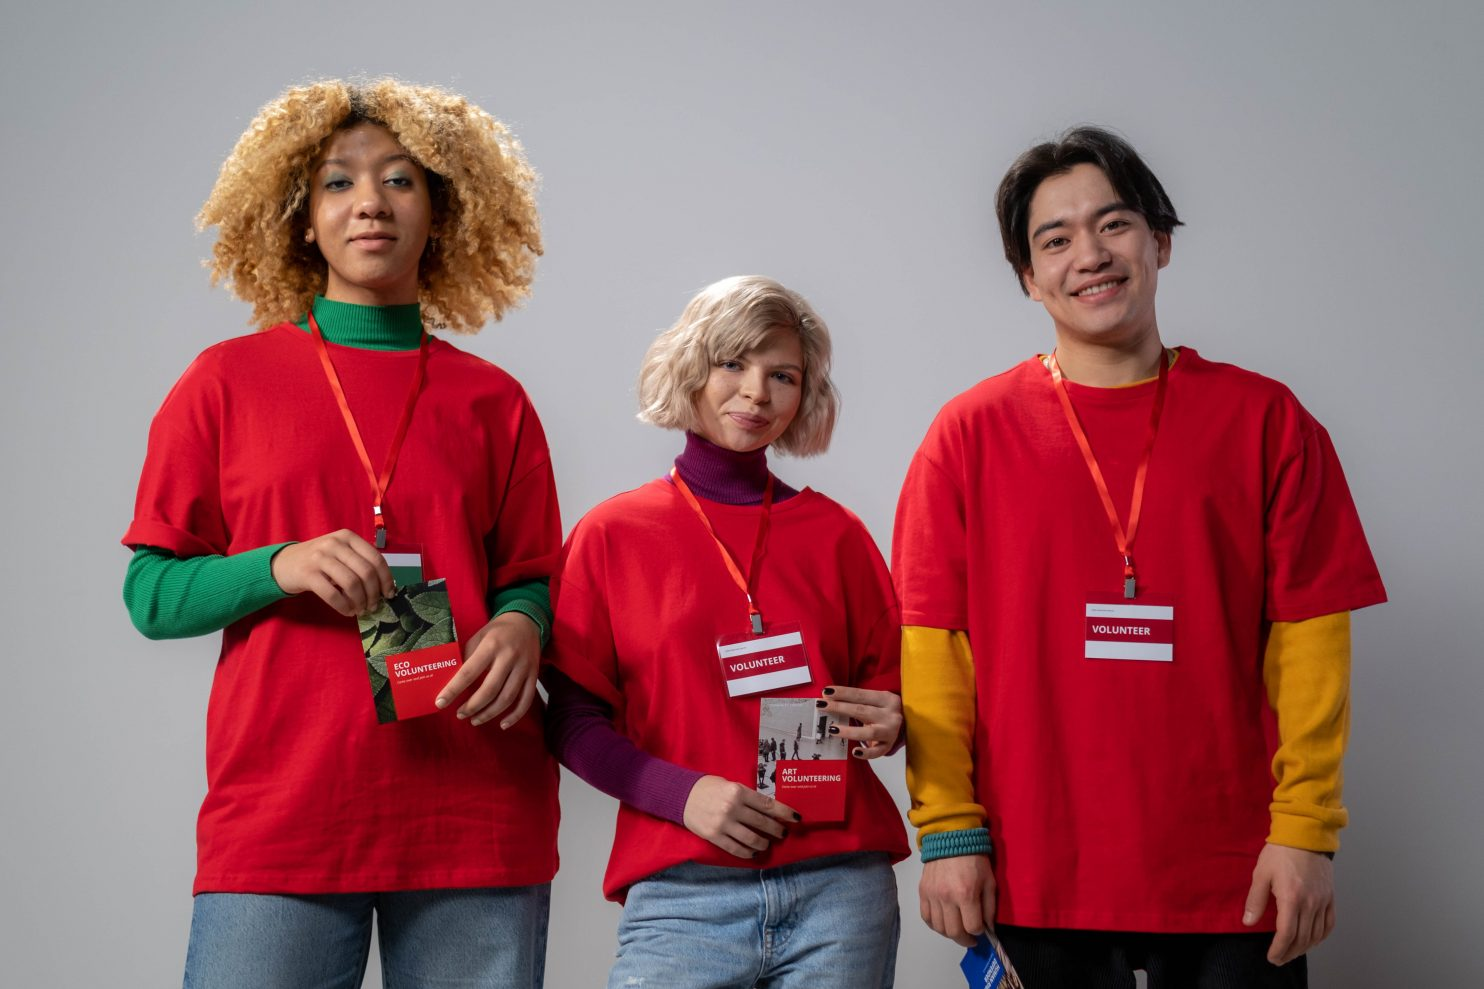 Three volunteers in bright red shirts looking at the camera